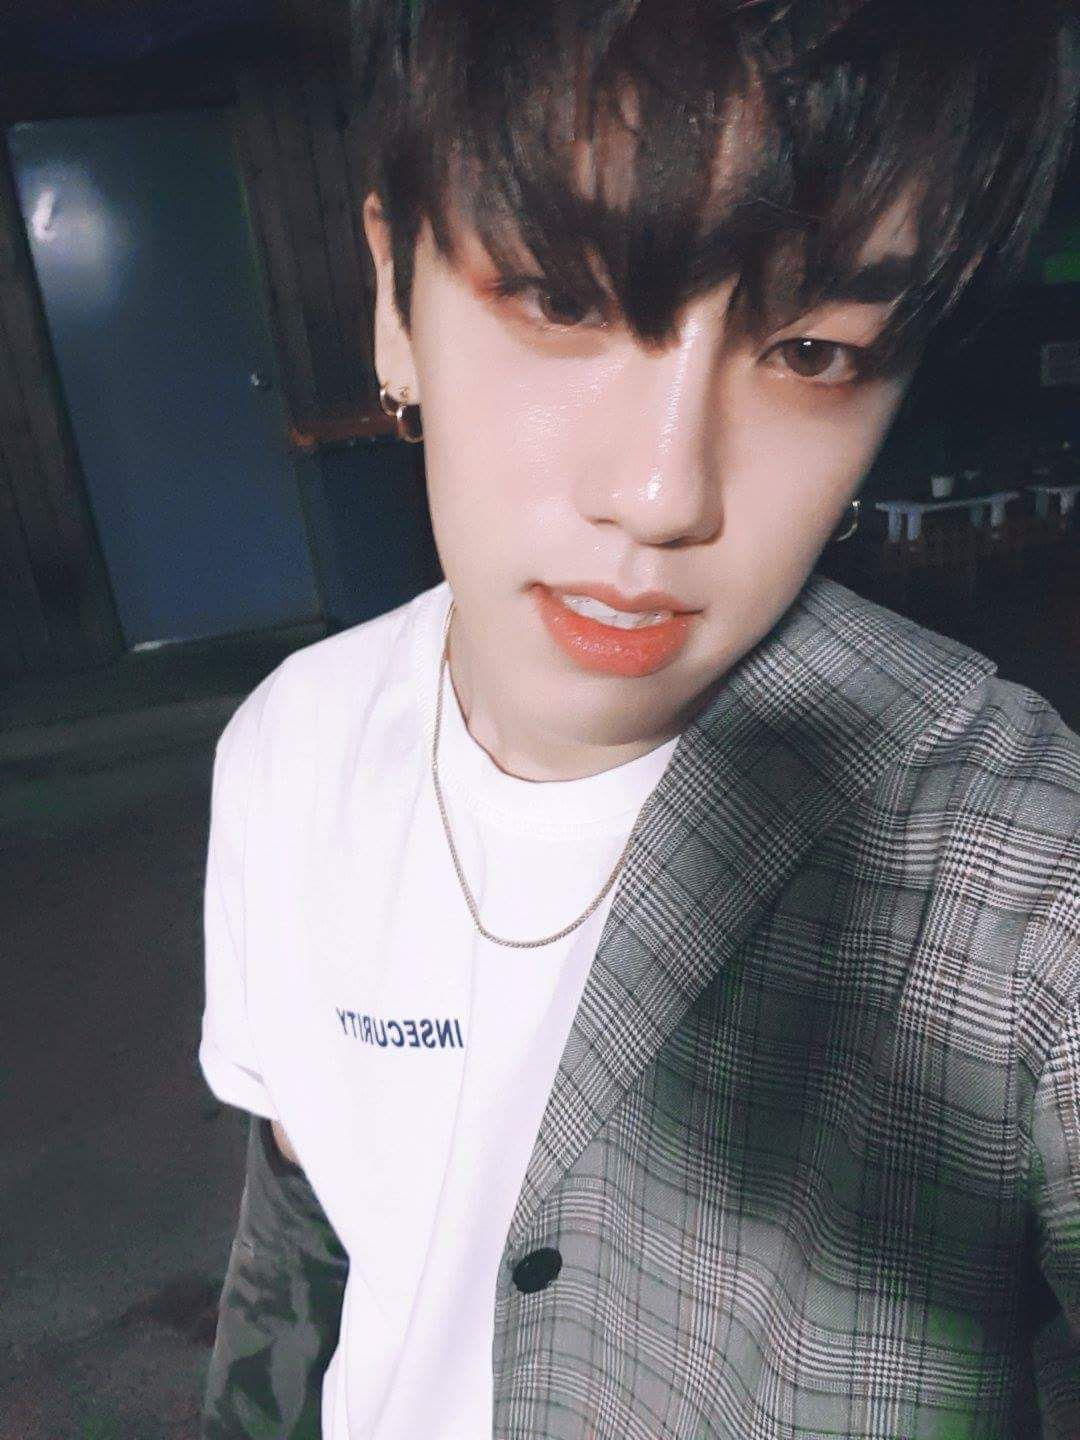 rubin mixnine lee rubin t kpop asian and boys